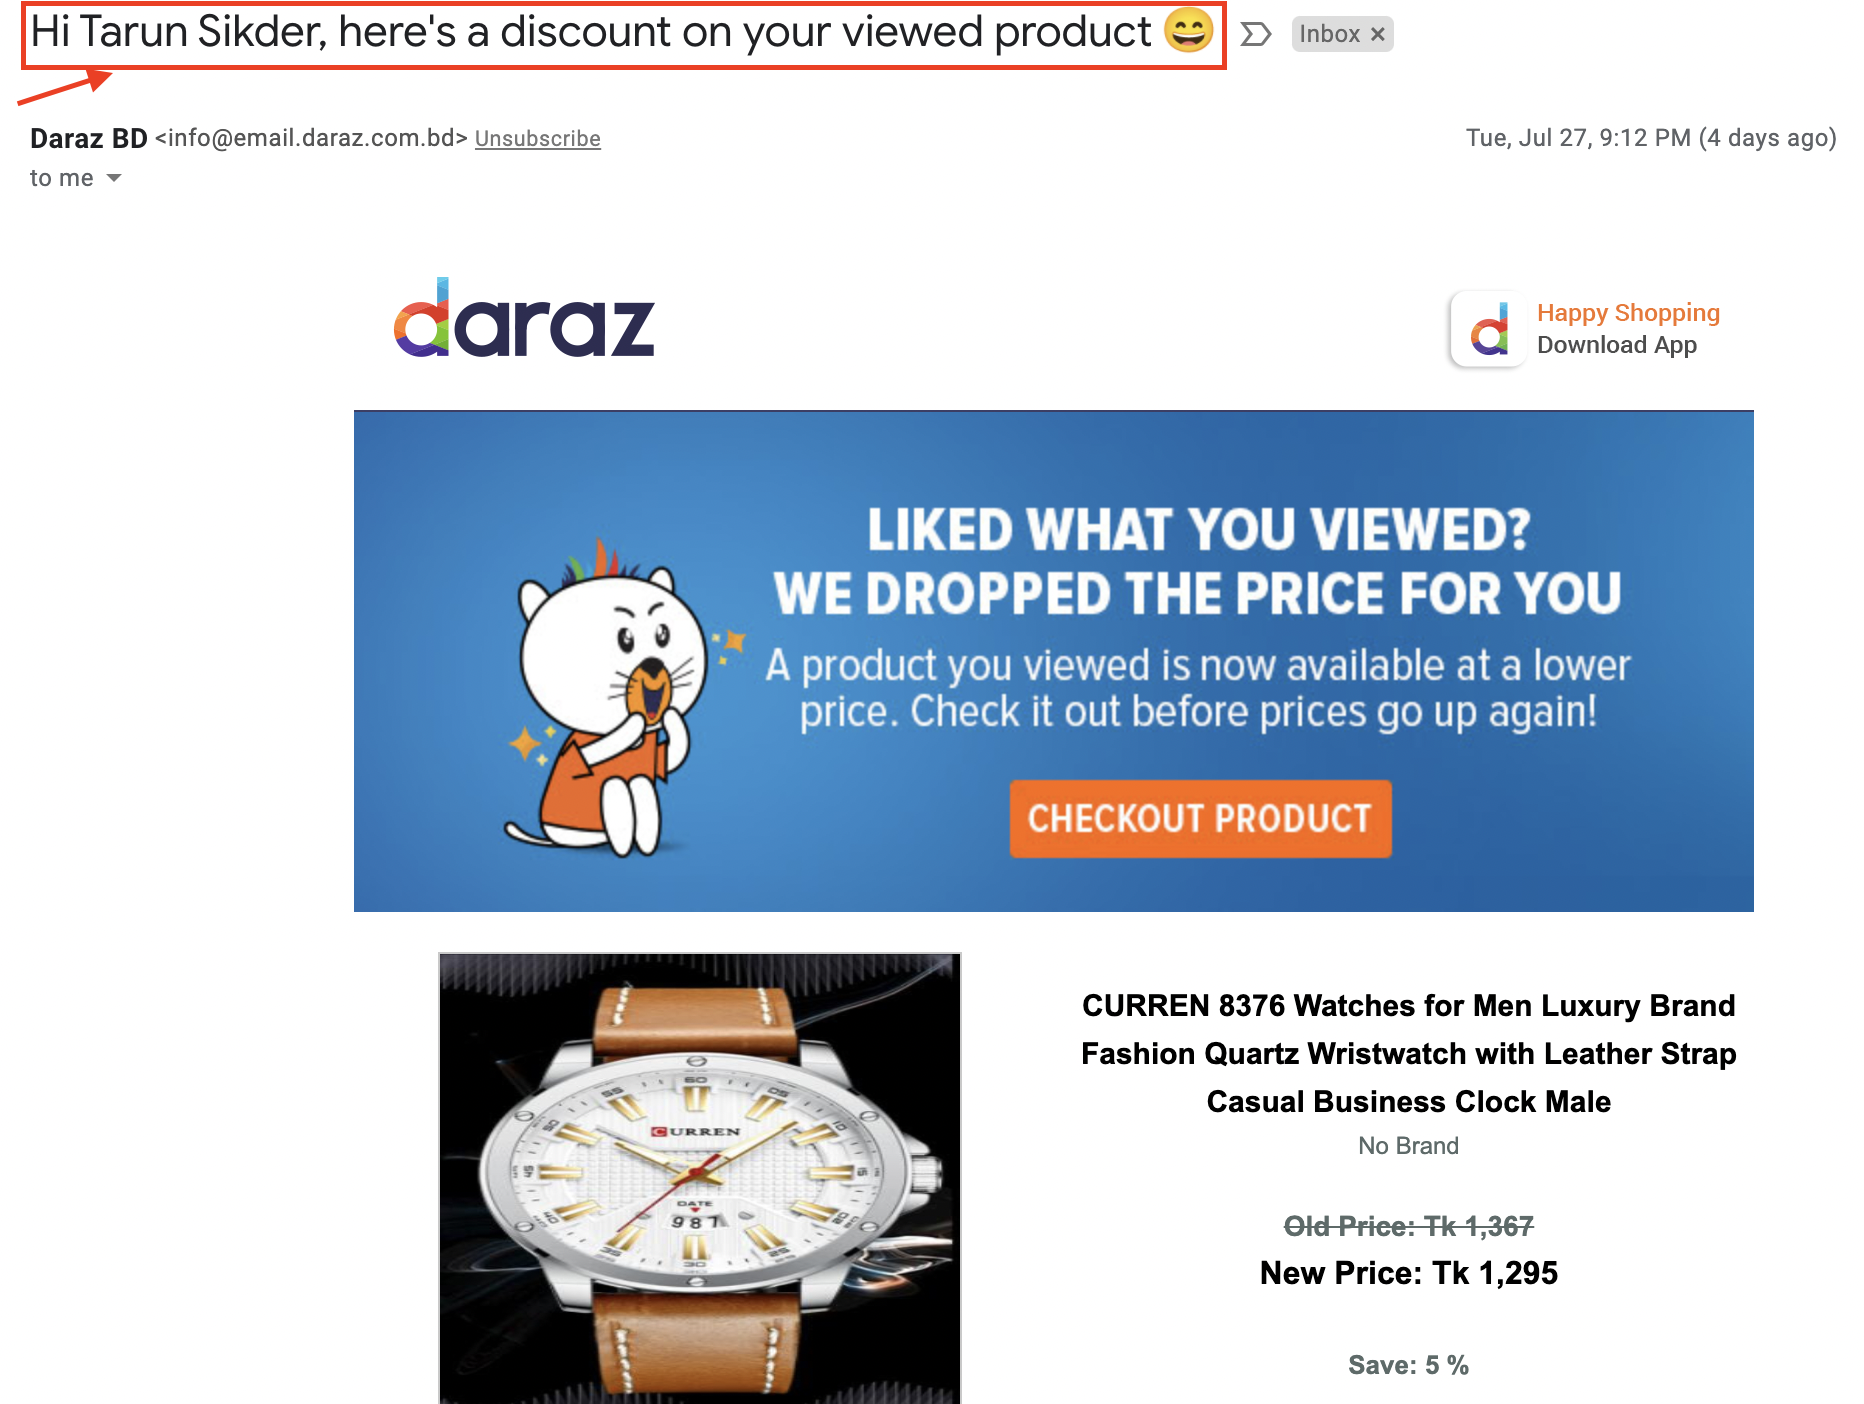 ecommerce personalized email